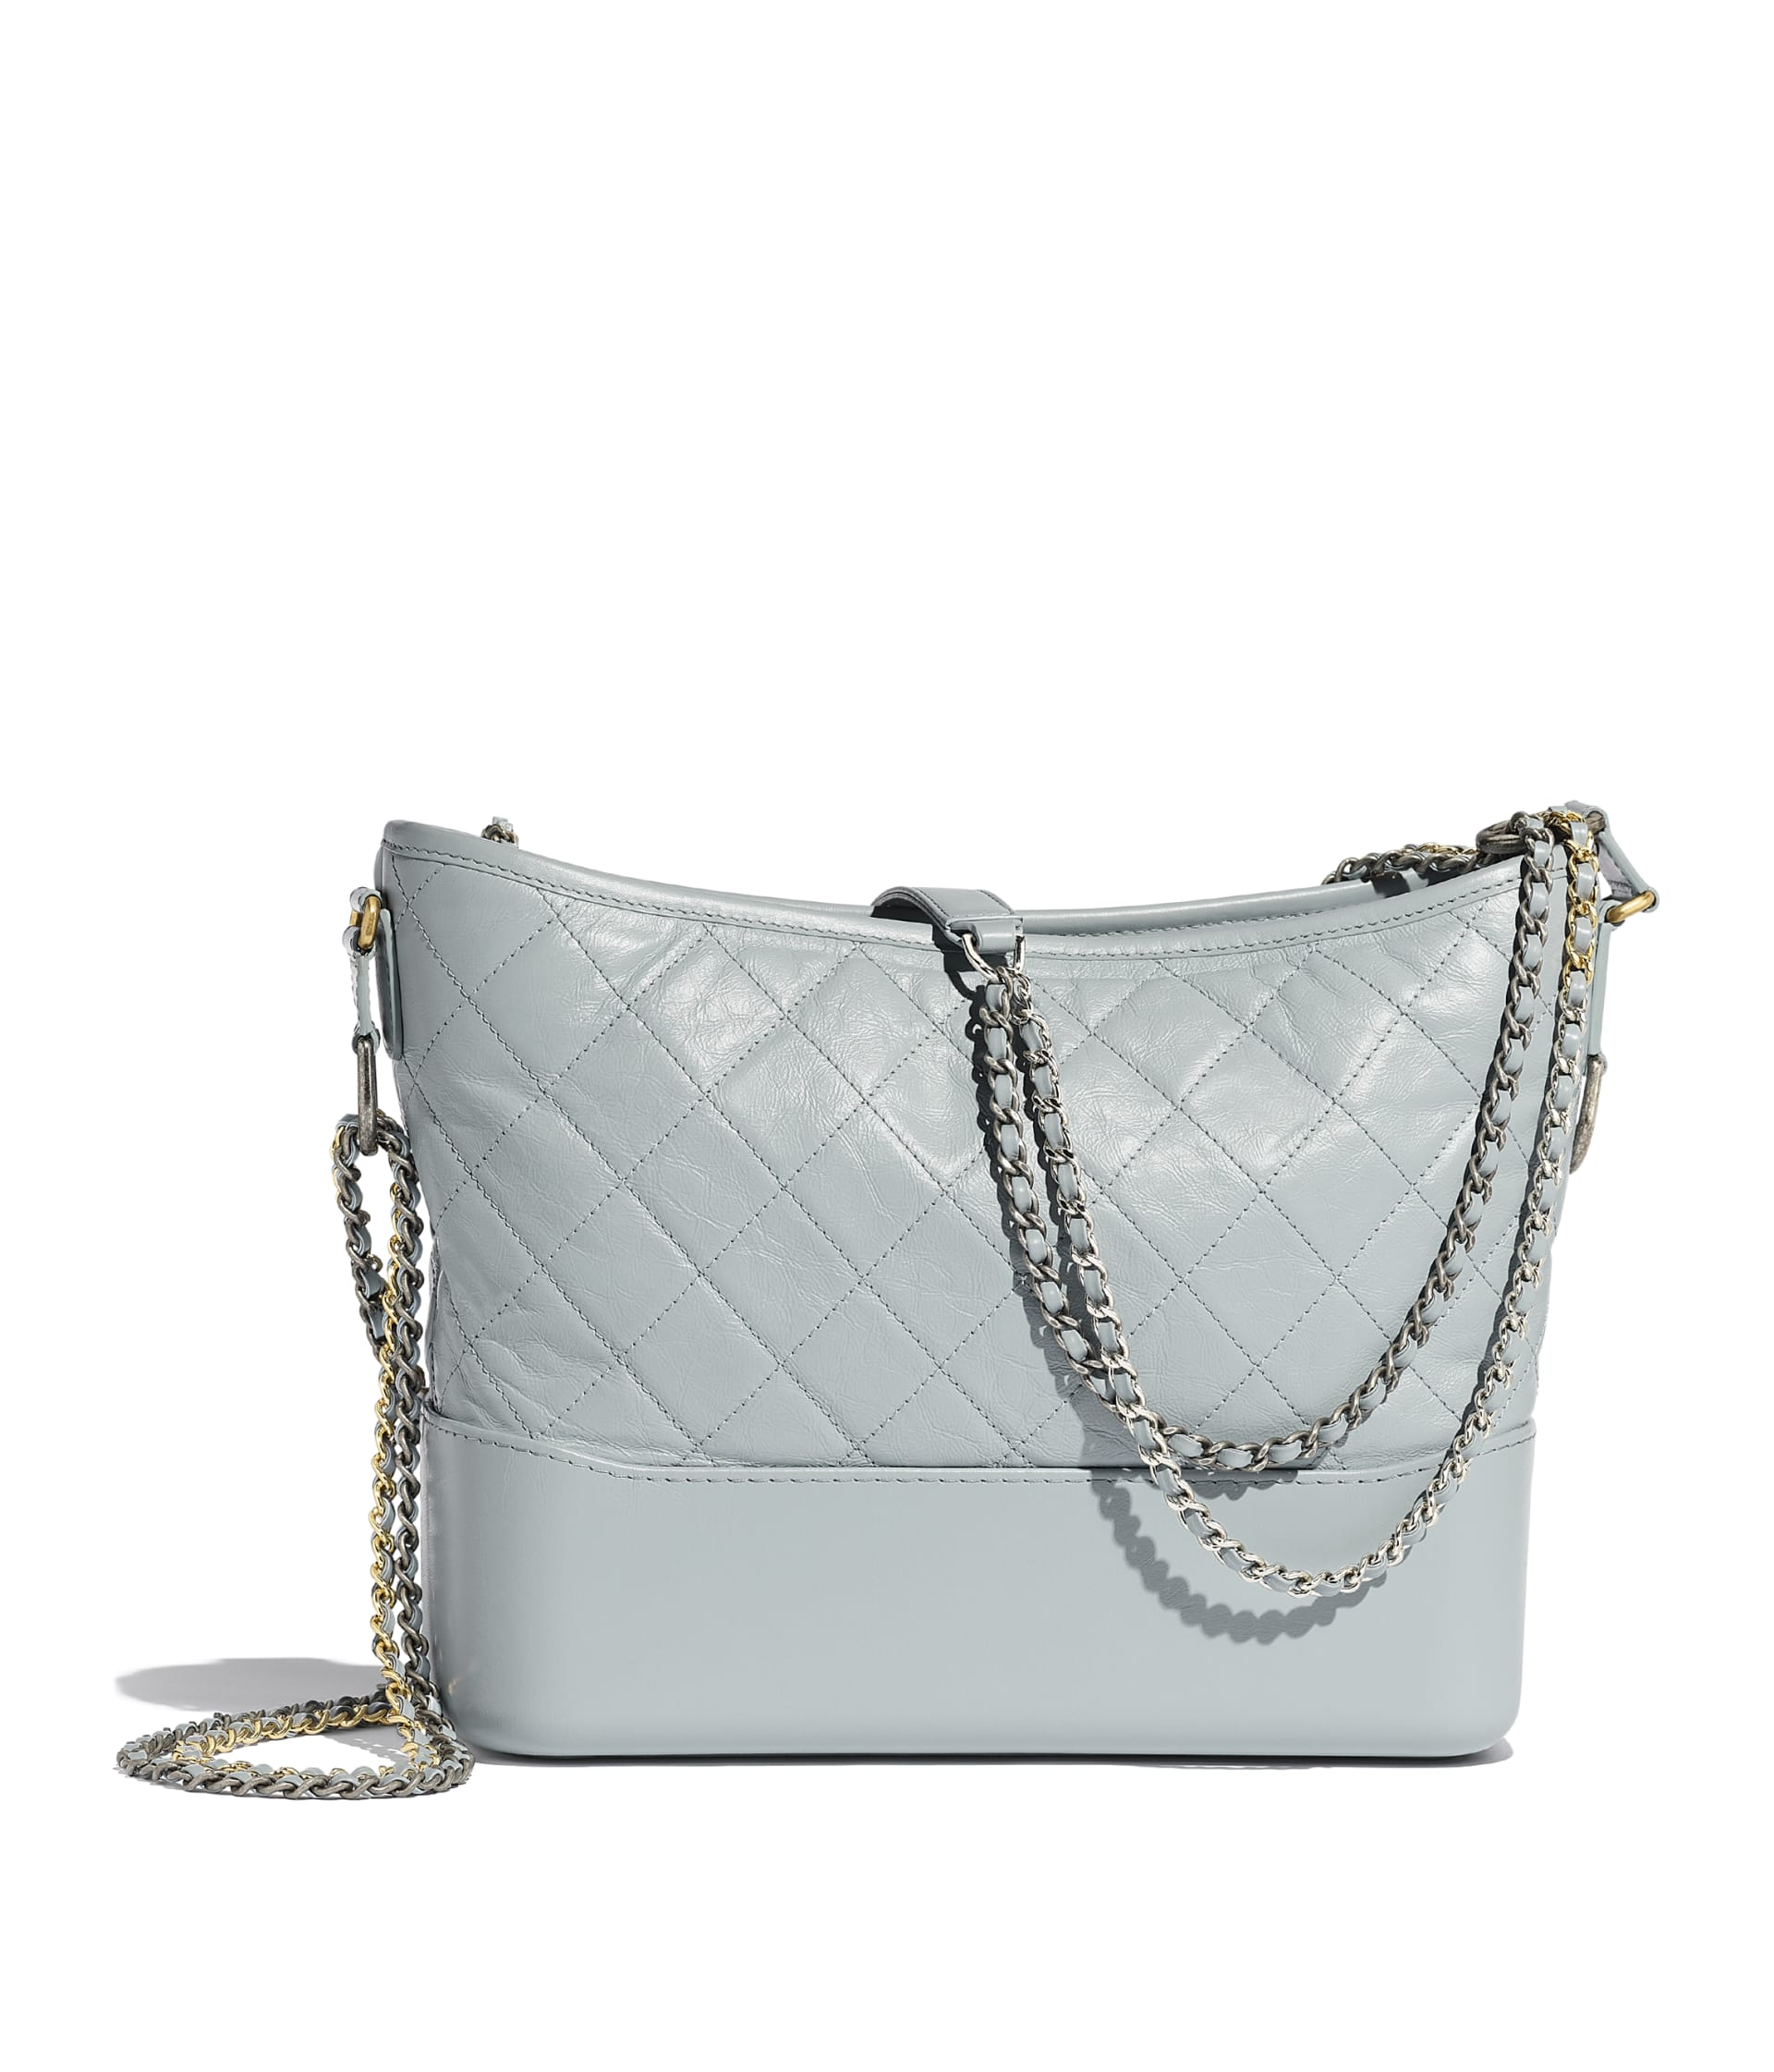 image 2 - CHANEL'S GABRIELLE  Large Hobo Bag - Aged Calfskin, Smooth Calfskin, Gold-Tone, Silver-Tone & Ruthenium-Finish Metal - Light Blue & Turquoise